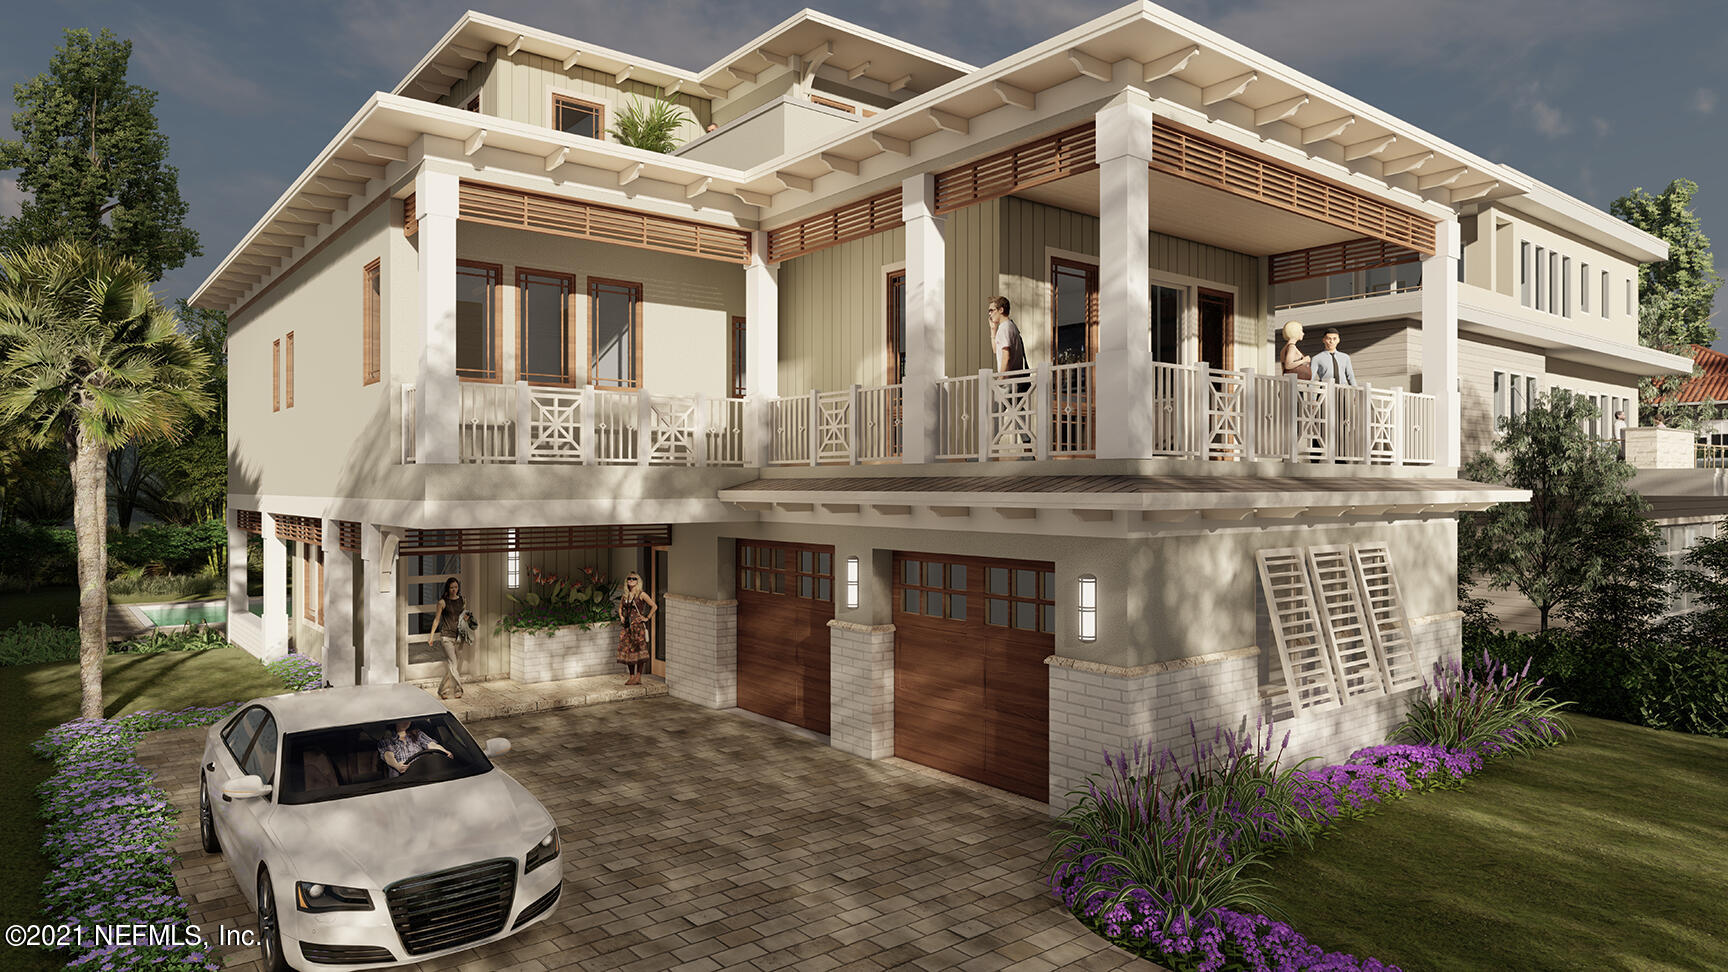 BRAND NEW CONSTRUCTION in desirable South Jax Beach on prestigious Ocean Drive!   Walk across the street to the beach and enjoy breathtaking view from the top levels of this stunning 3 level POOL home. With 3748 sf, 5 bedrooms, 5 full bathrooms, 2 half bathrooms plus an office and elevator from ground level up. Built with the highest structural finishes including concrete block on first level, tile roof and impact glass windows. Stunning interior finishes with windows, sliding glass doors and ocean terraces designed to capture the quintessential ''beach life''. After a day at the beach, relax by the pool and summer kitchen.  Walk the quiet community and enjoy nearby local shops and dining. Completion is estimated within 10-11 months.